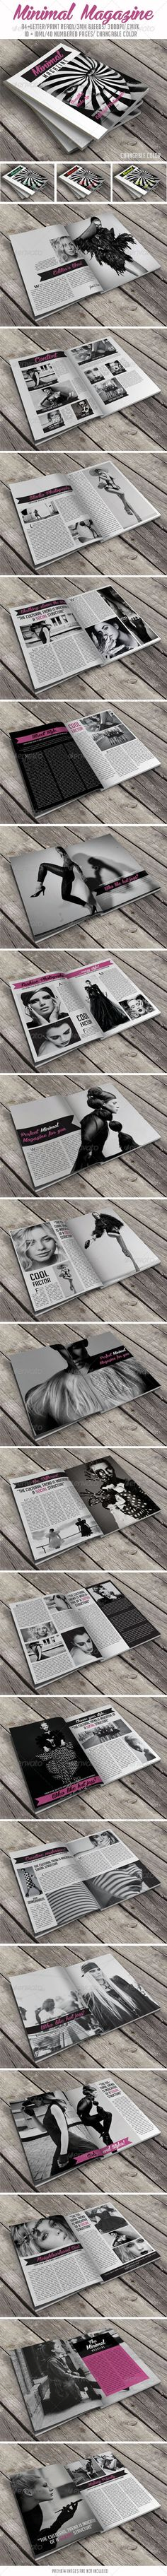 Minimal Magazine, ID Template #layout #indesign #magazine #template #editorial